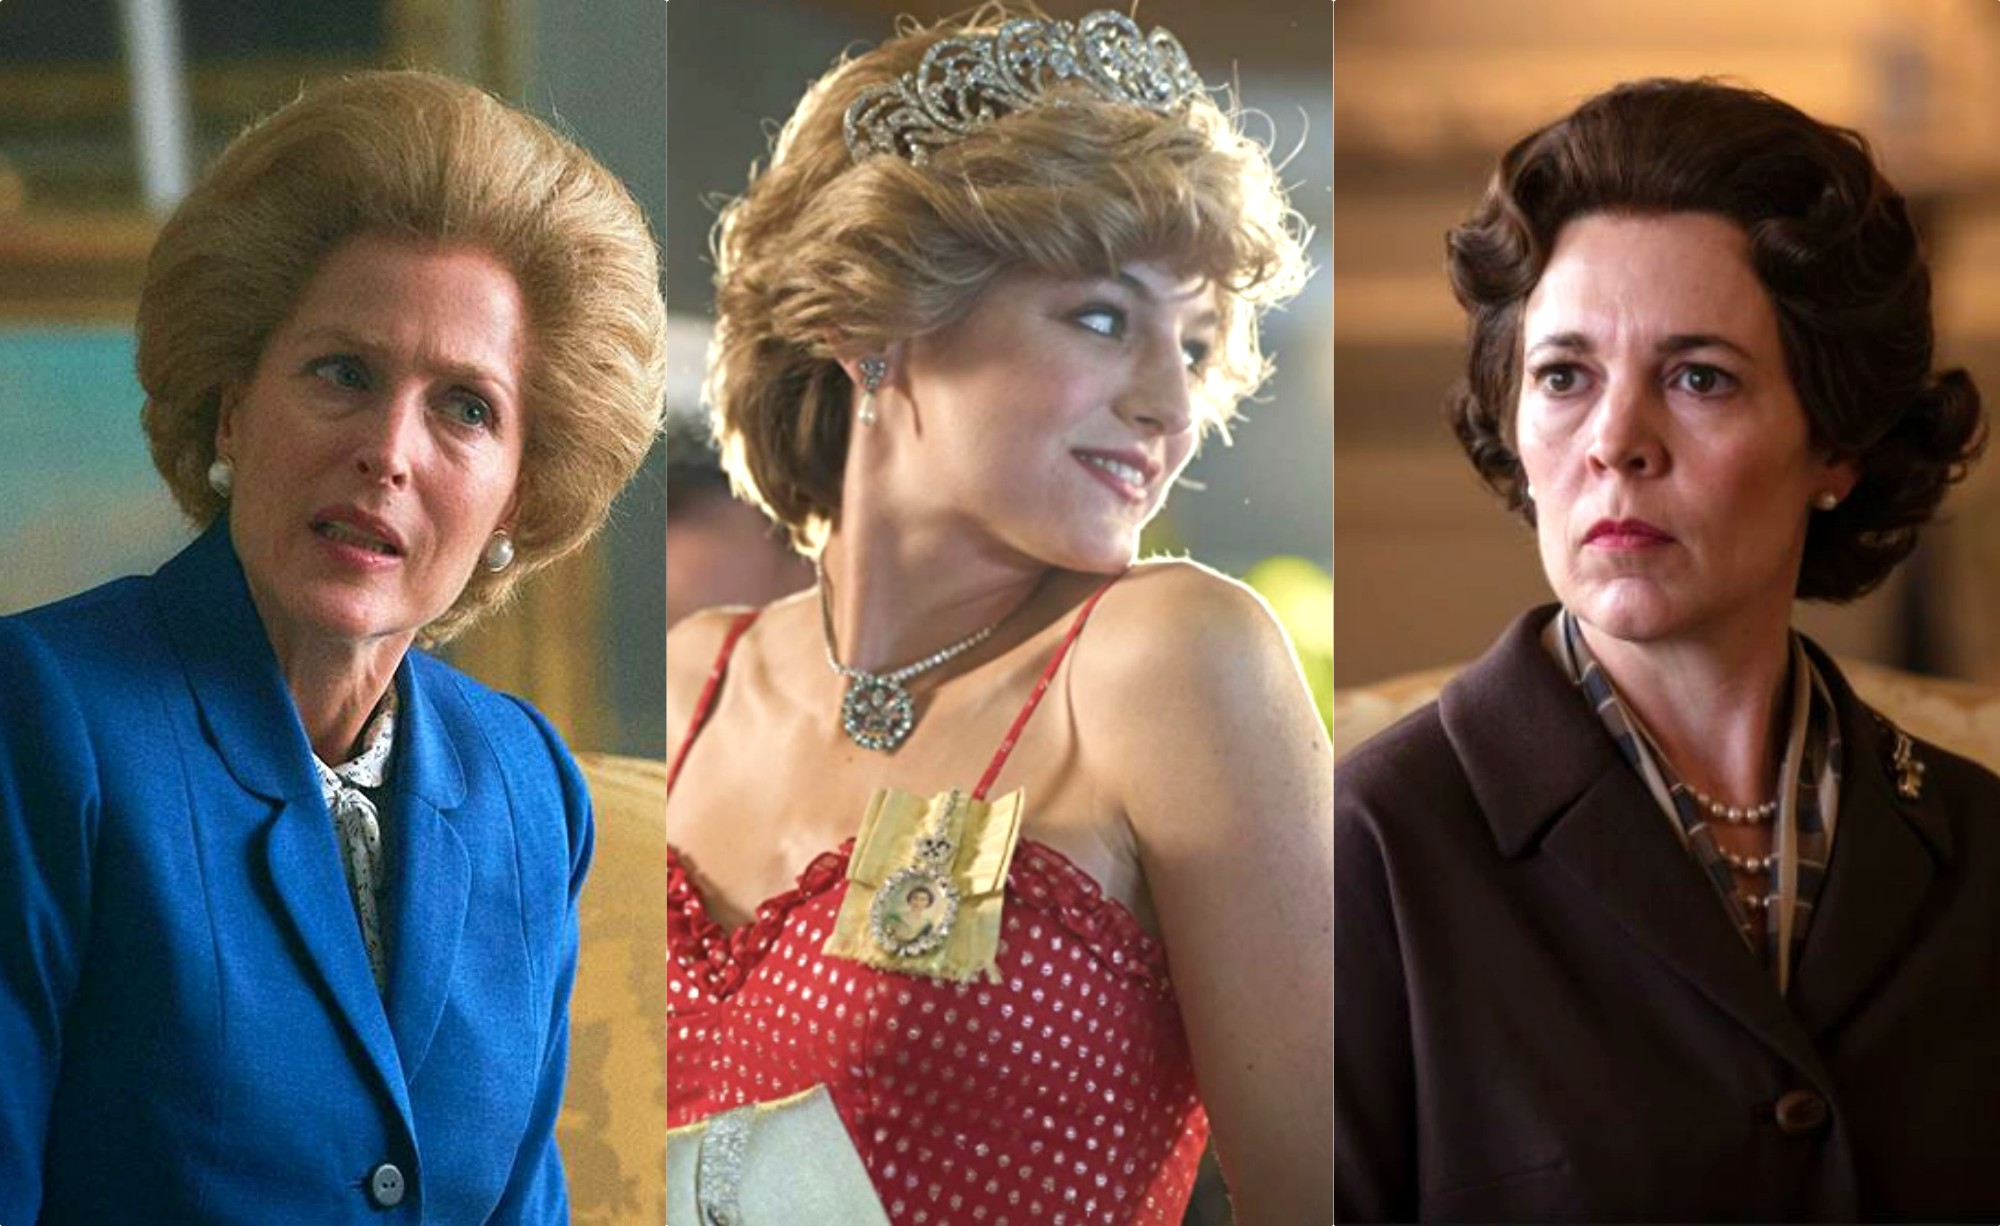 season 4 of the crown spotlights era of female leadership